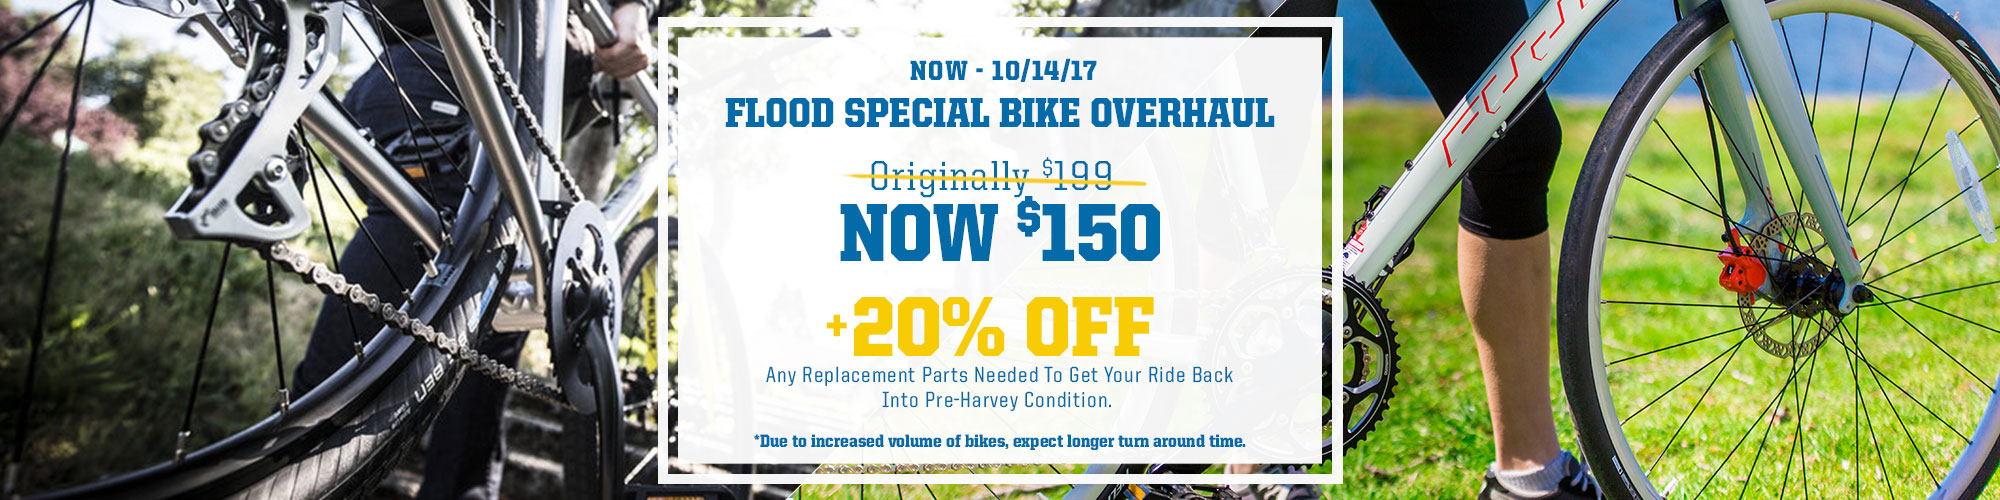 Flood Special Bike Overhaul. Originally $199, Now $150 Plus 20% Off any replacement parts needed to get your ride back into Pre-Harvey condition.